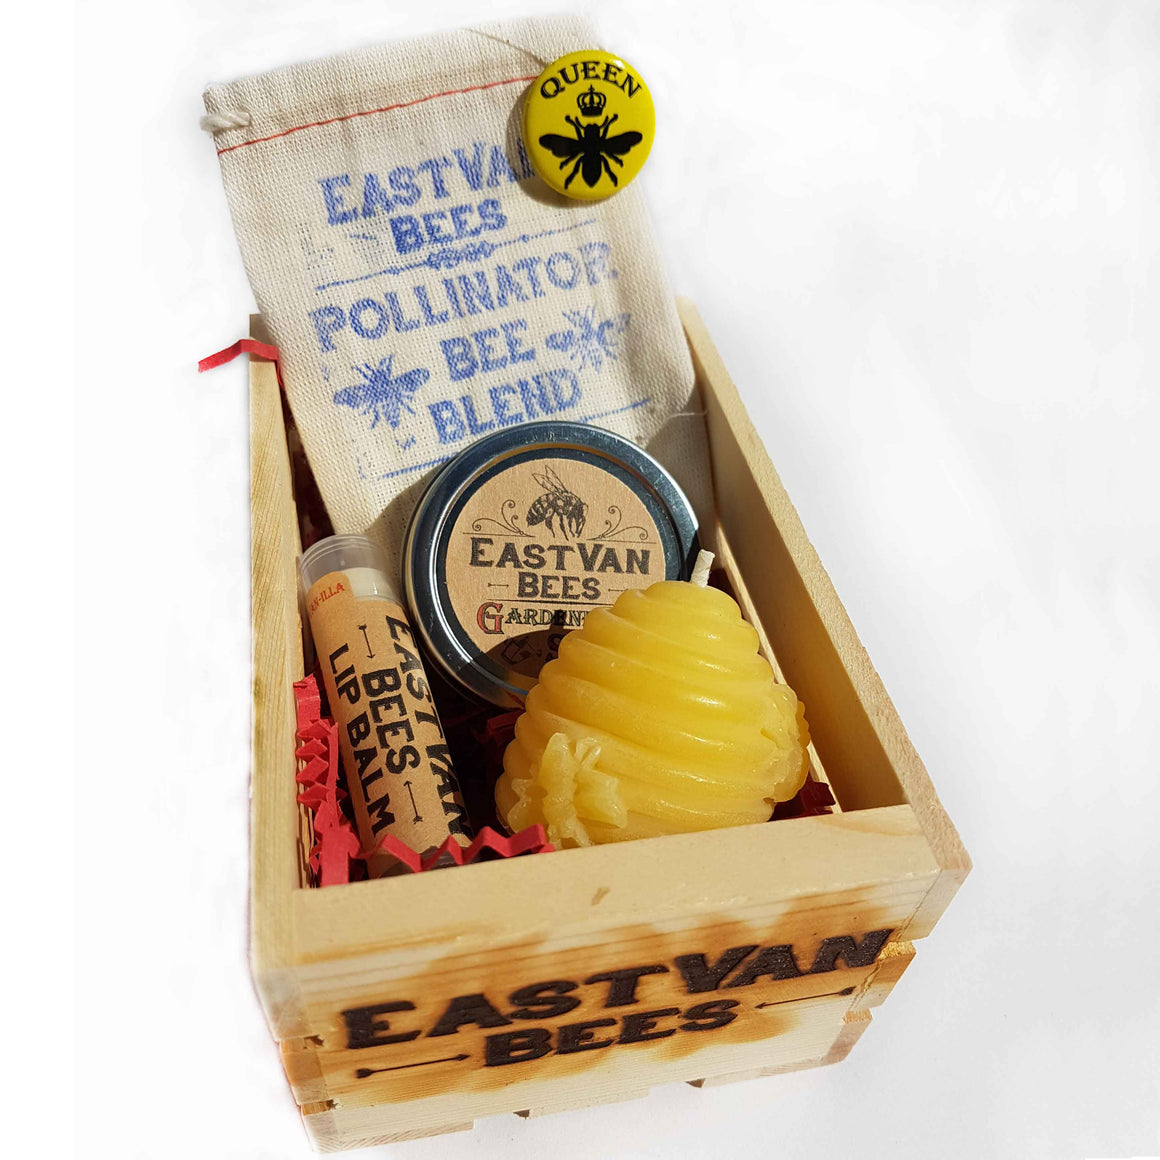 Gardeners gift basket with 100% Beeswax Skep beehive Candle, Pollinator Seed pack, Lip Balms, Gardeners Moisturizing Salve